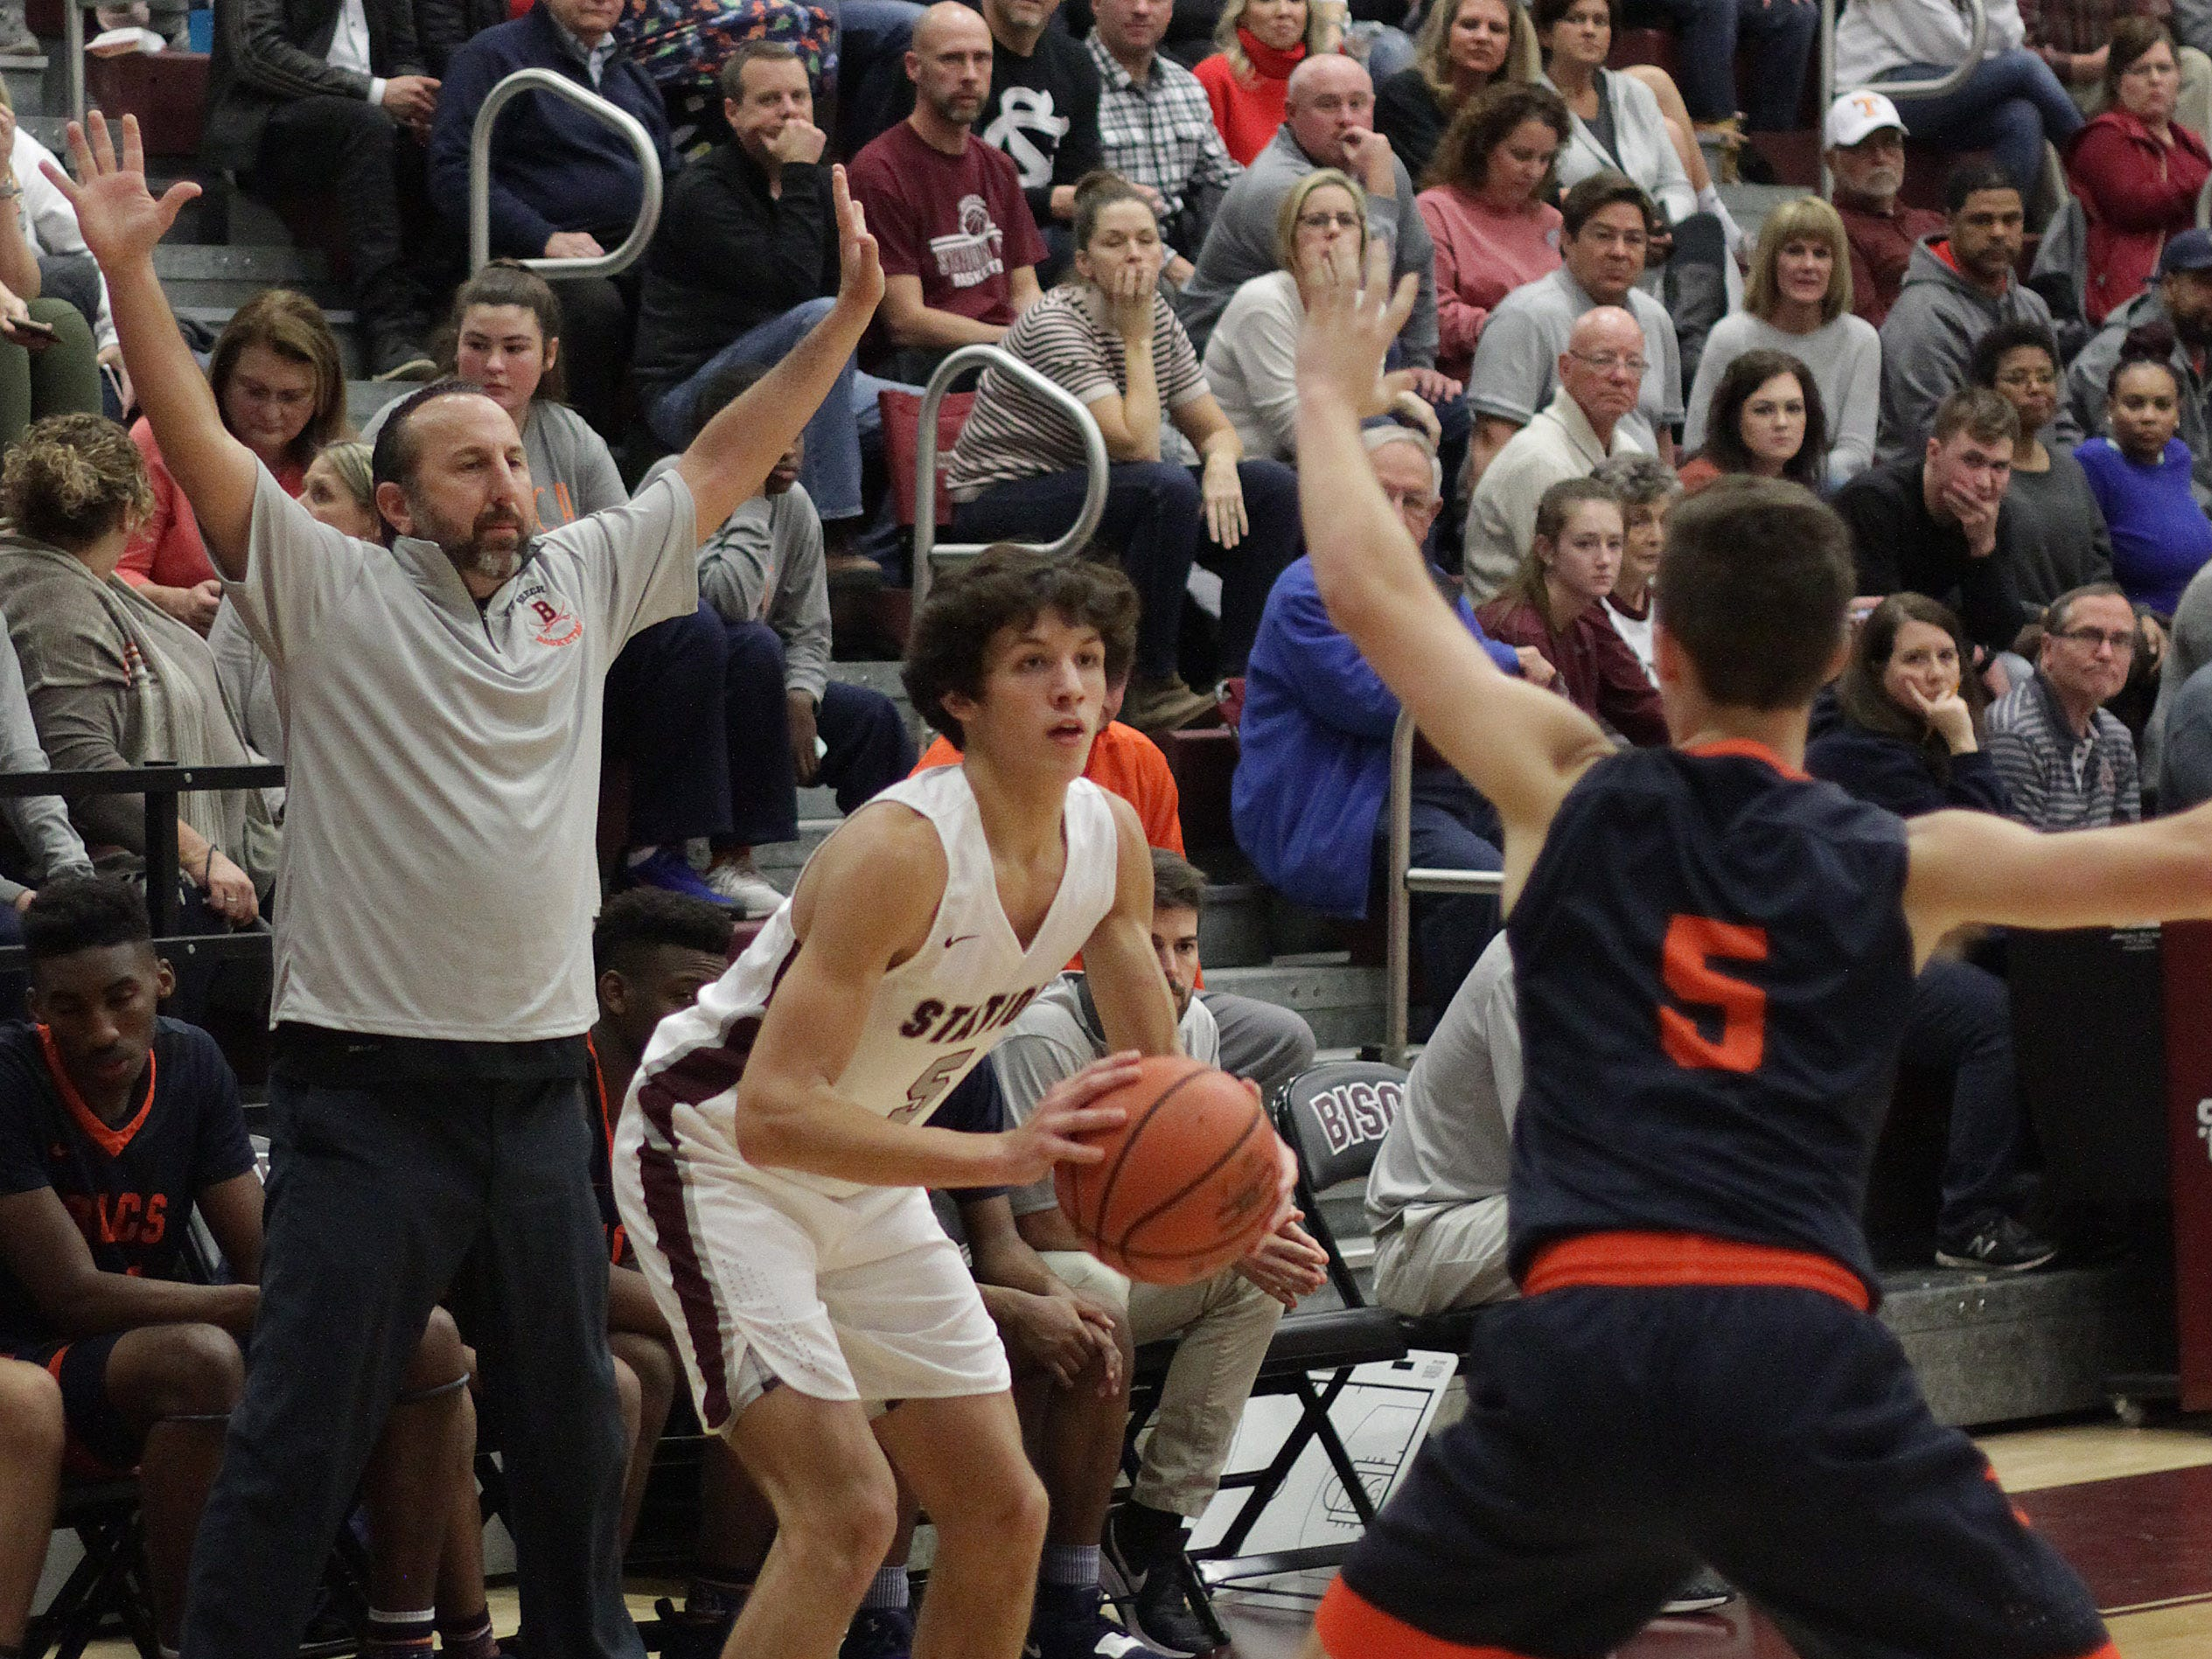 Station Camp's Dane Diez looks to shoot while guarded by Beech's Luke Fleming on Friday, December 7, 2018.